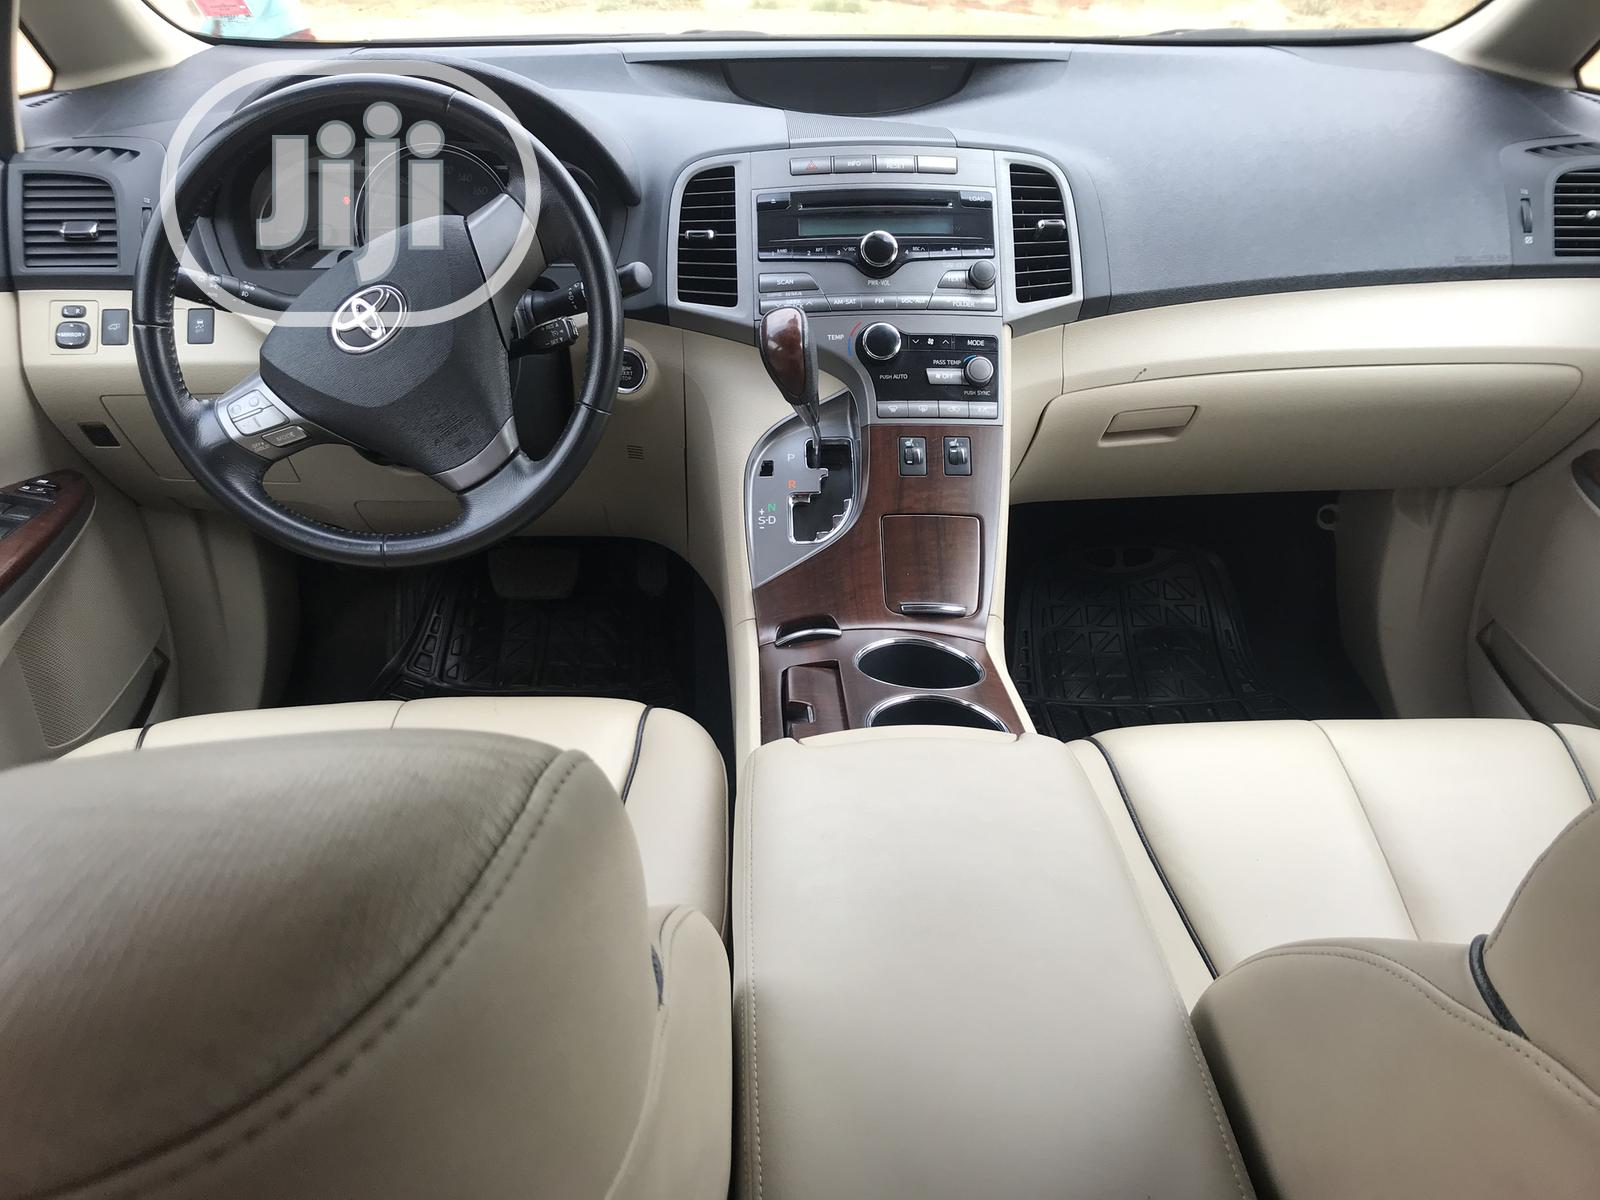 Toyota Venza 2012 Brown   Cars for sale in Wuye, Abuja (FCT) State, Nigeria